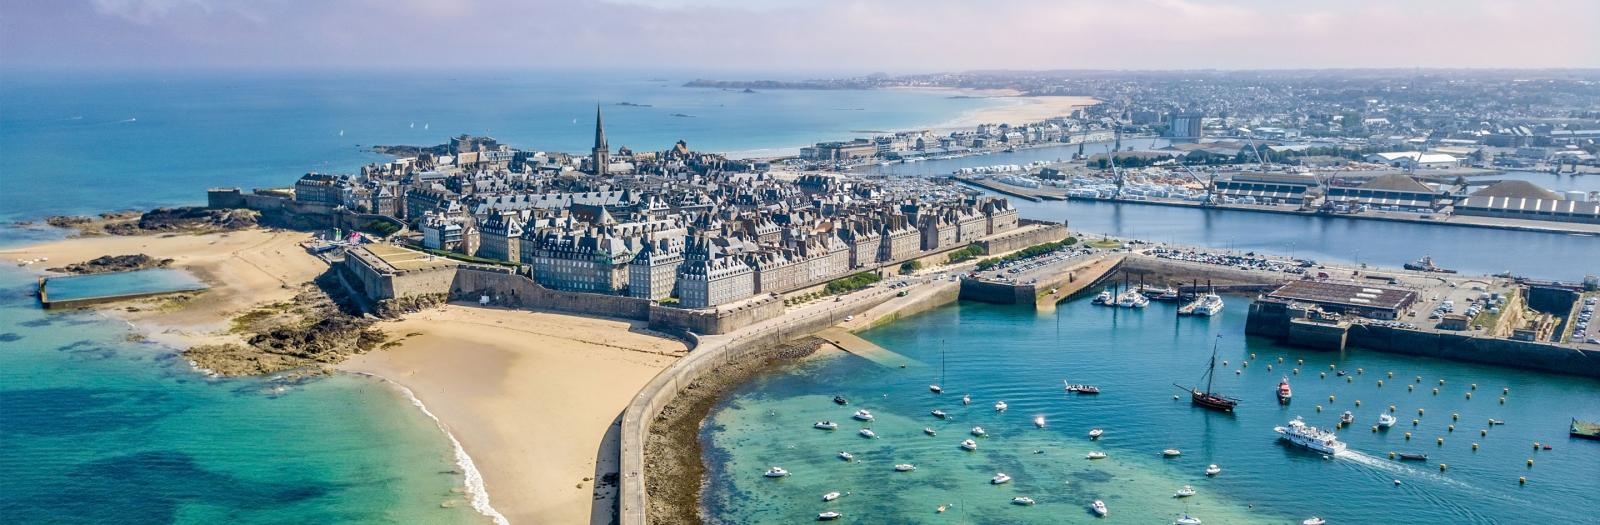 Islet of St. Malo, France